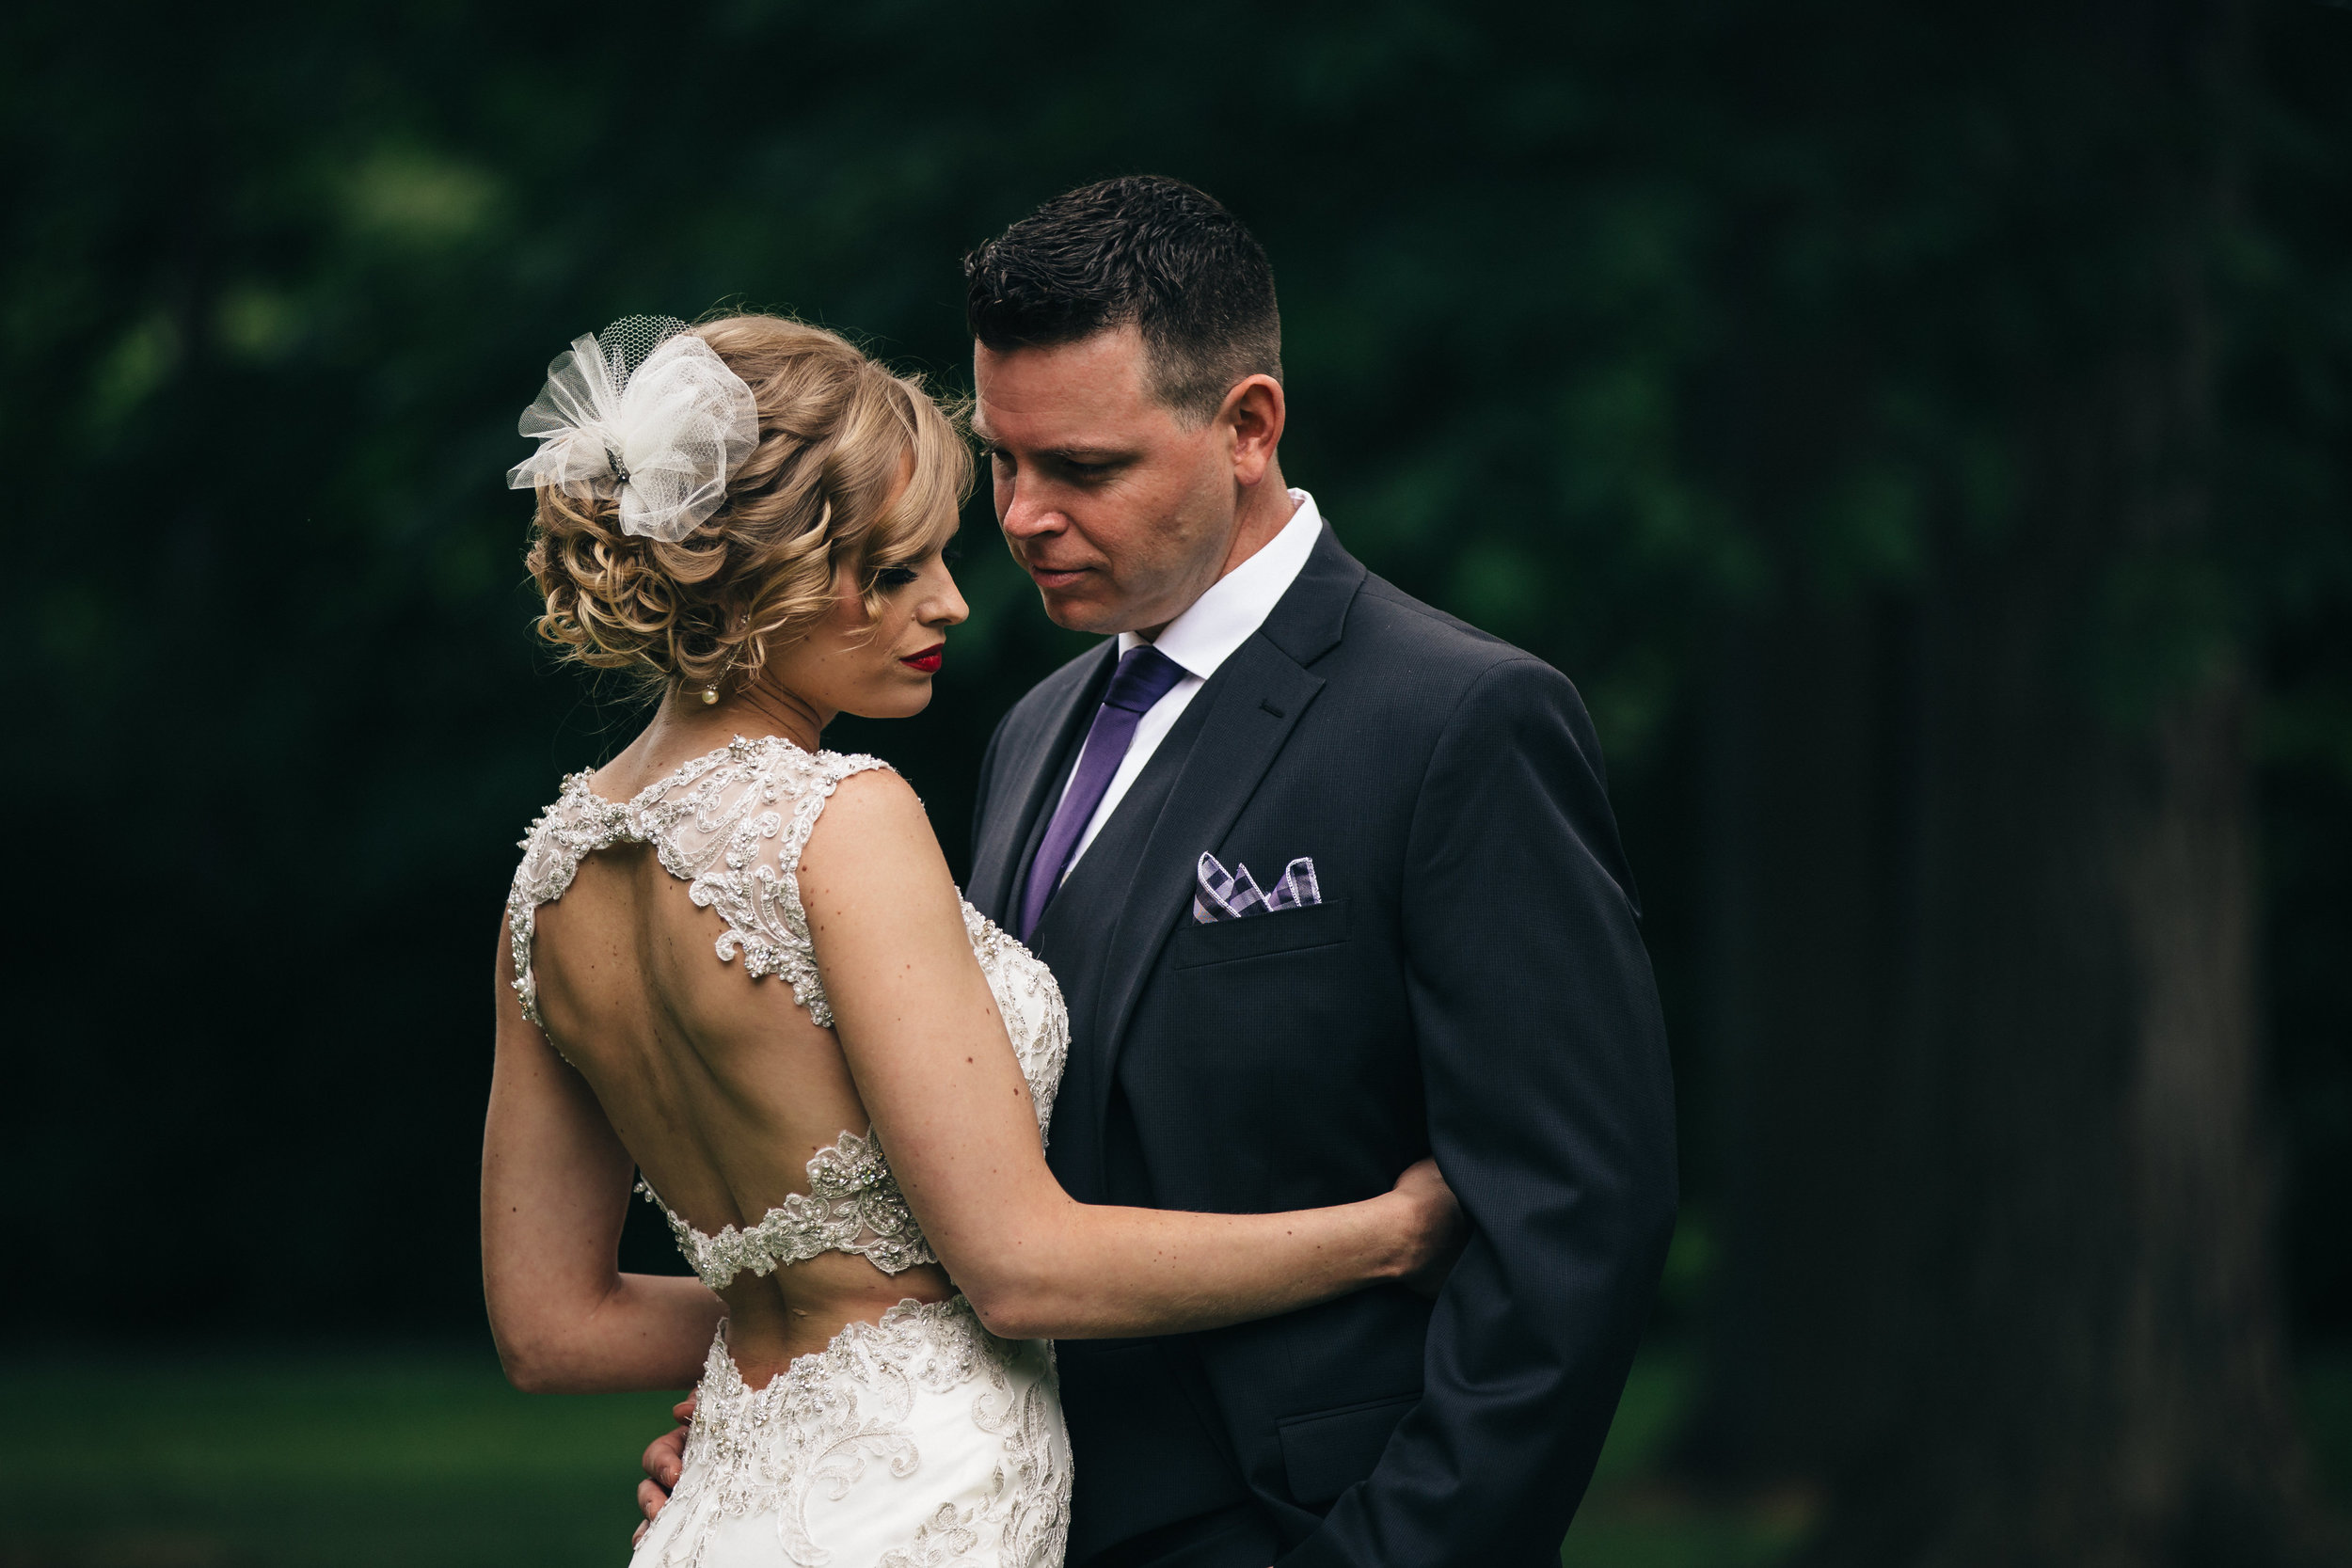 Wedding photography of groom and bride in lace wedding dress from Maggie Sottero Design.